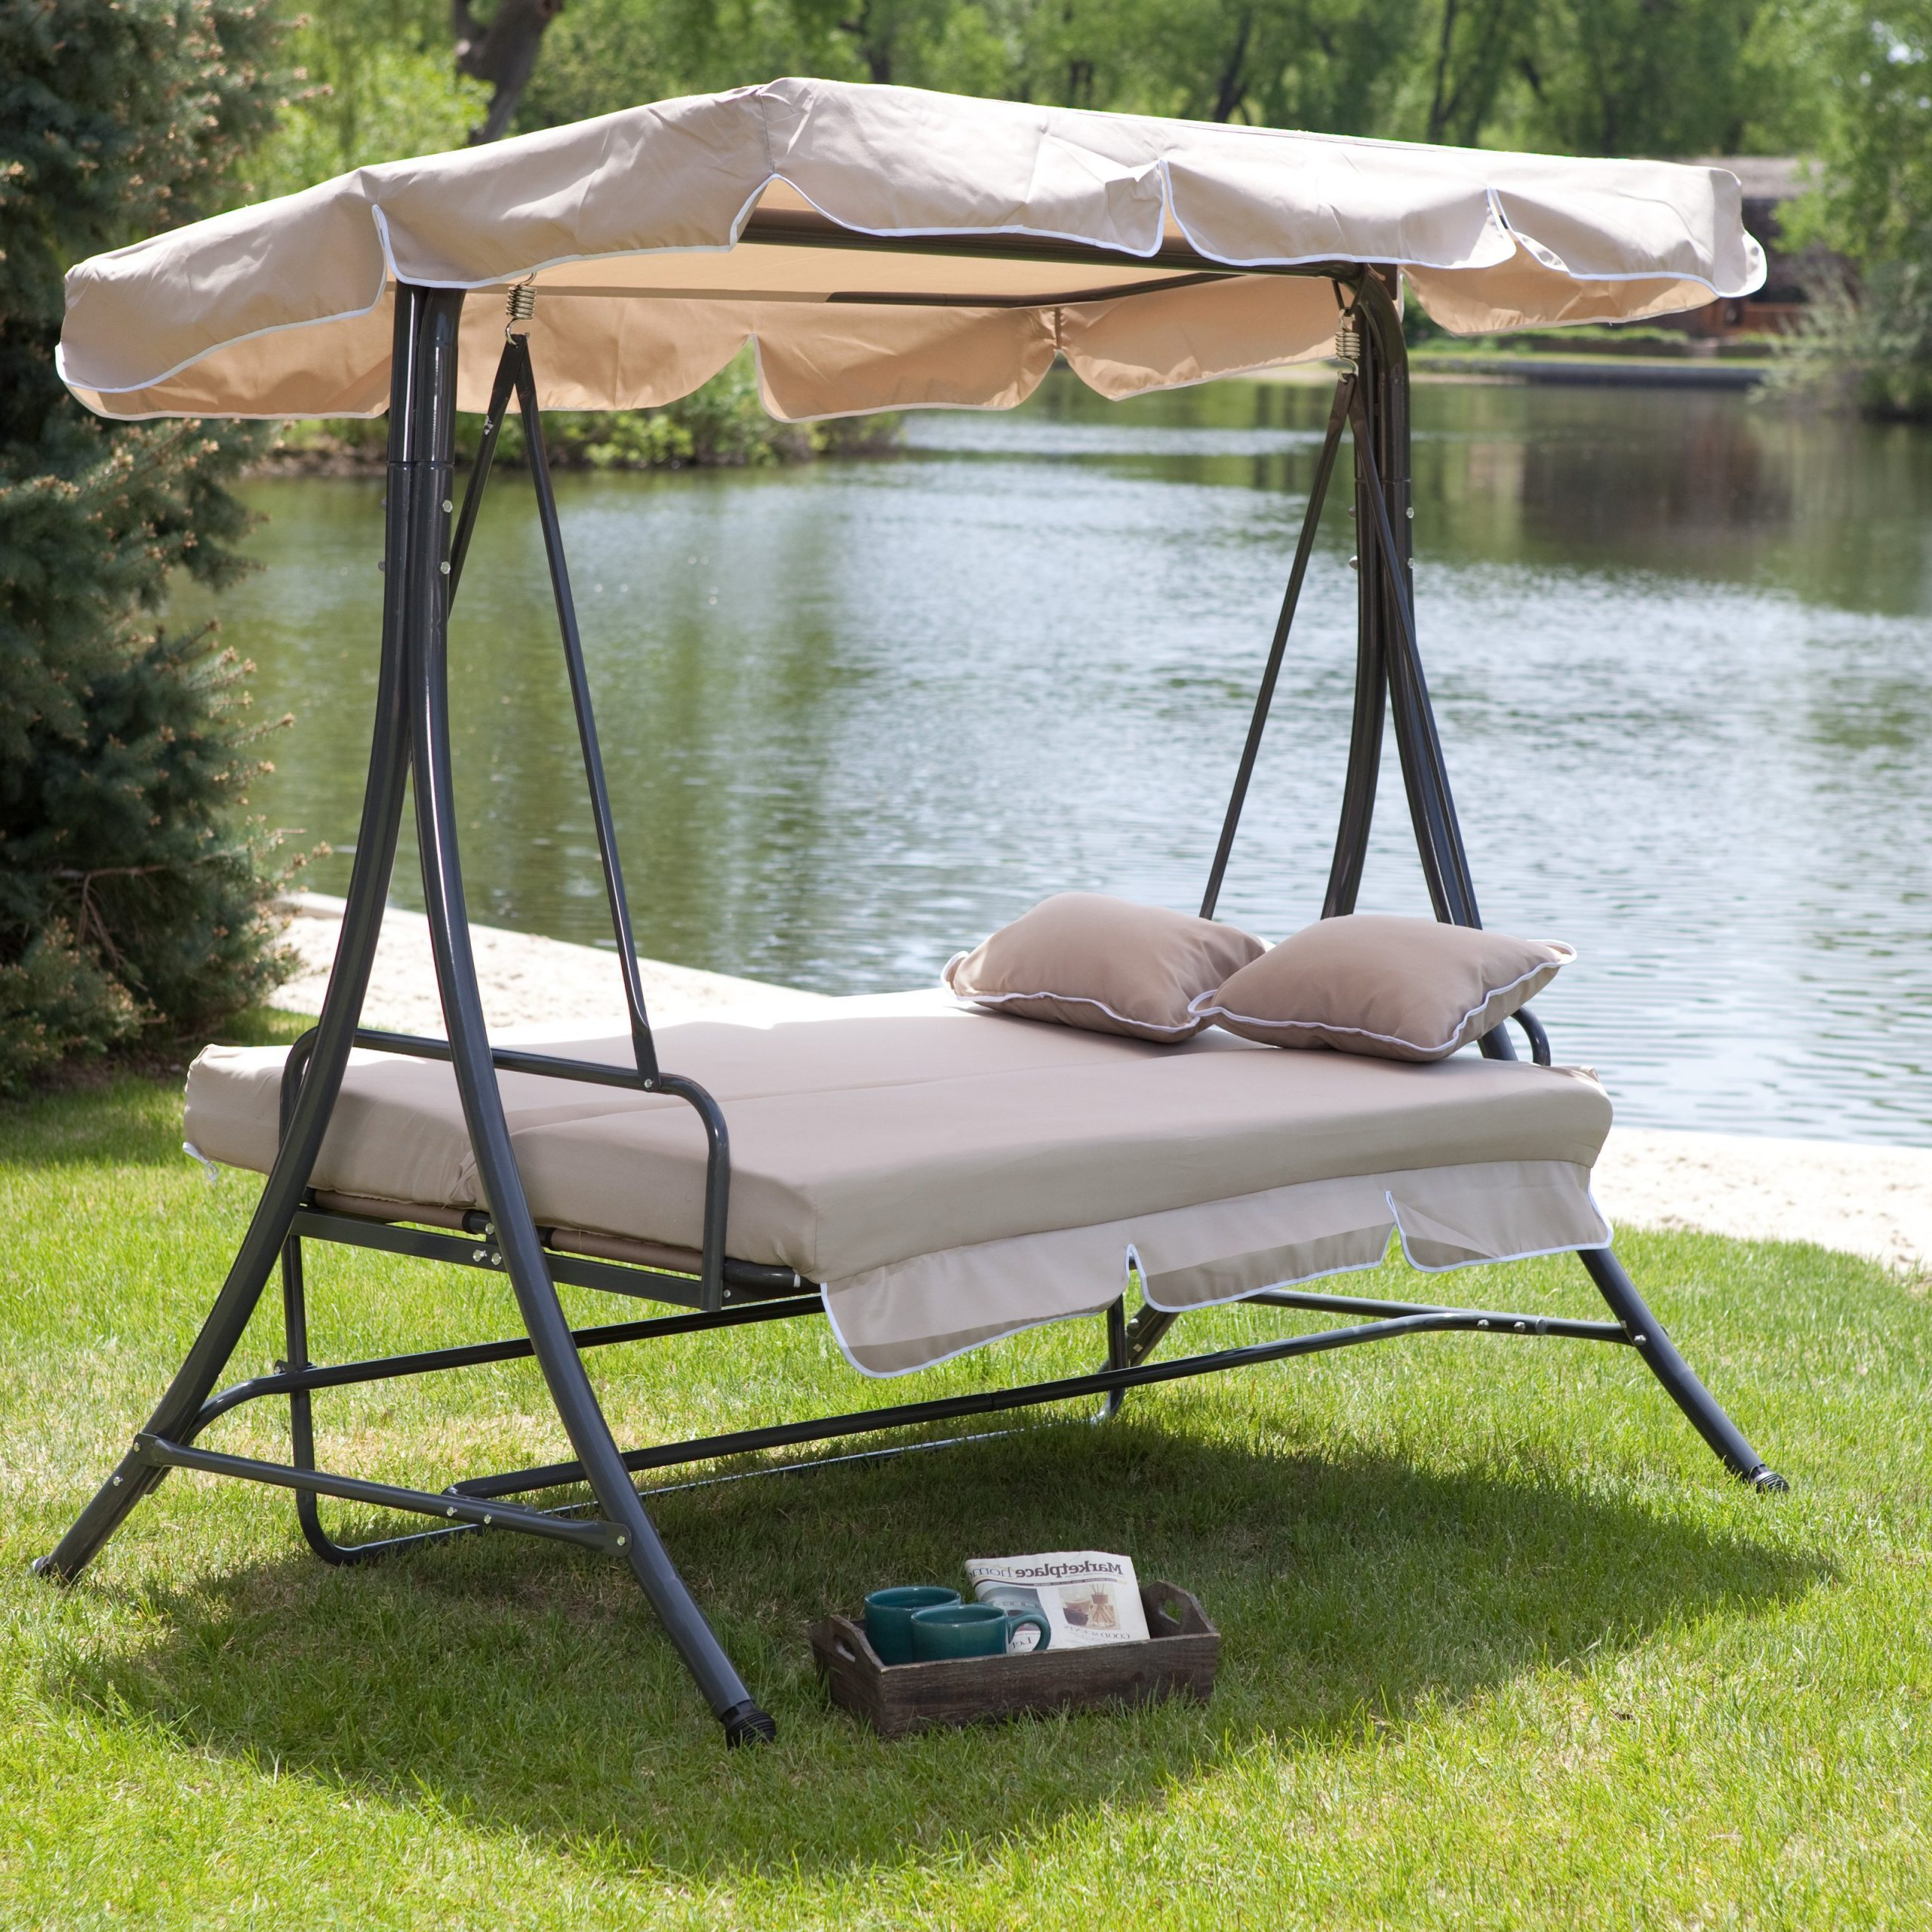 2020 Hammock Patio Backyard Outdoor Swing Hanging Chair With Two For Patio Hanging Porch Swings (View 16 of 30)